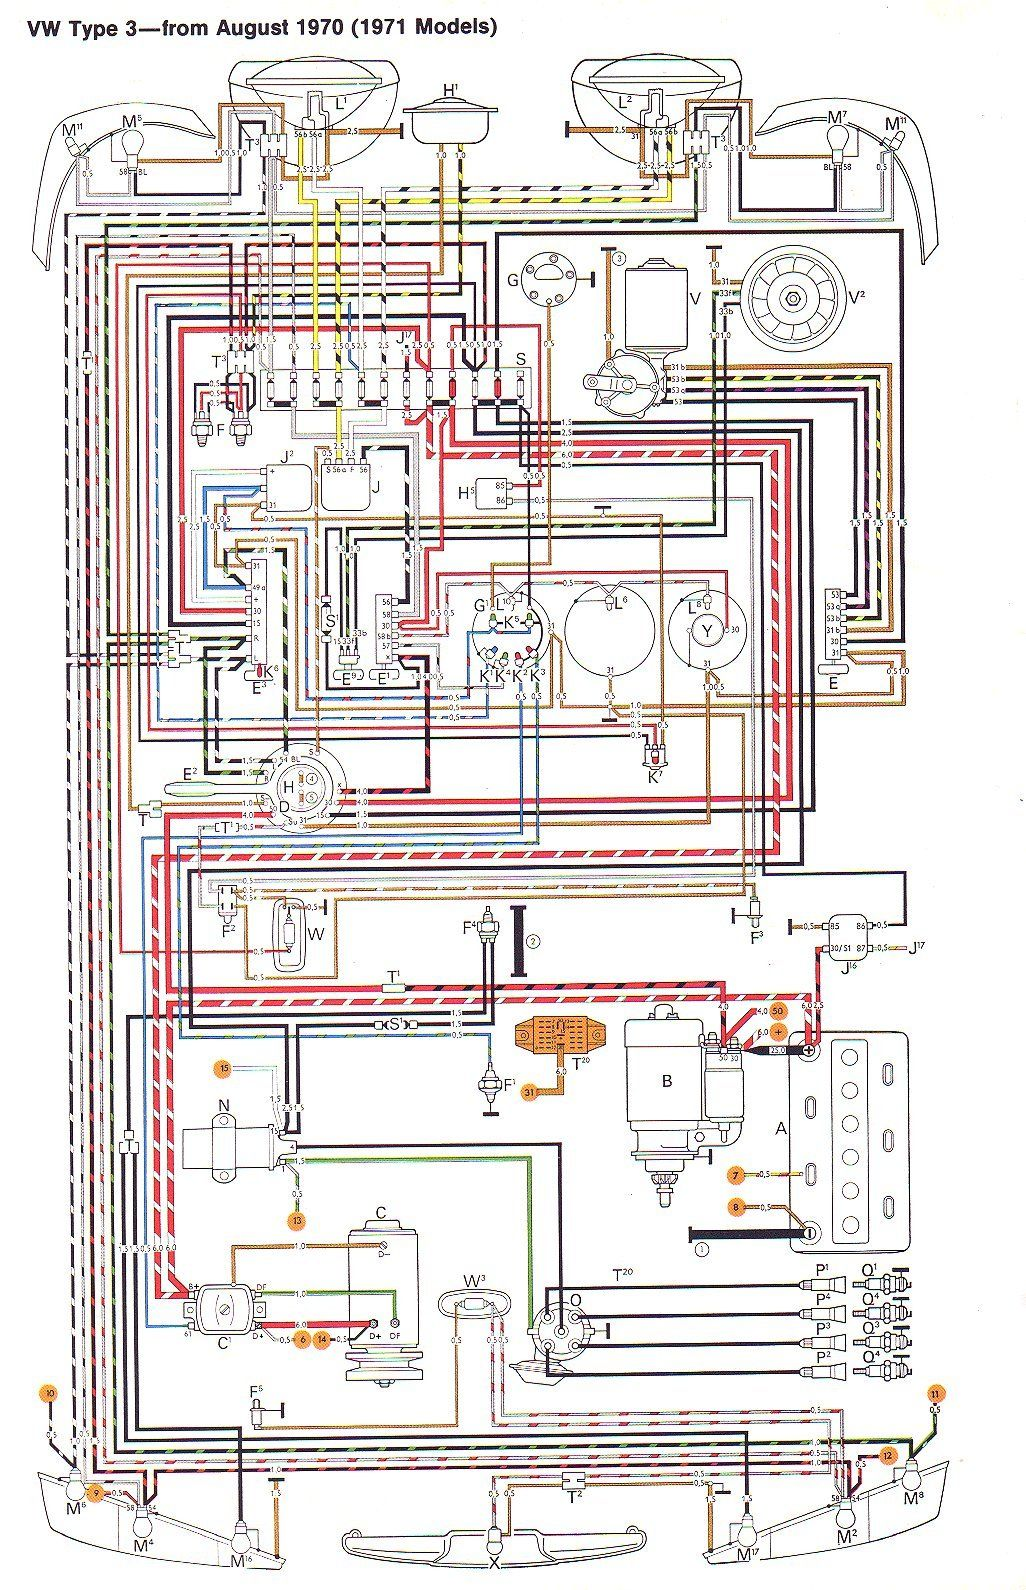 e0db58370f79a63d02d45f00cf63f44a 71 vw t3 wiring diagram ruthie pinterest volkswagen, engine 1969 vw squareback wiring diagram at webbmarketing.co